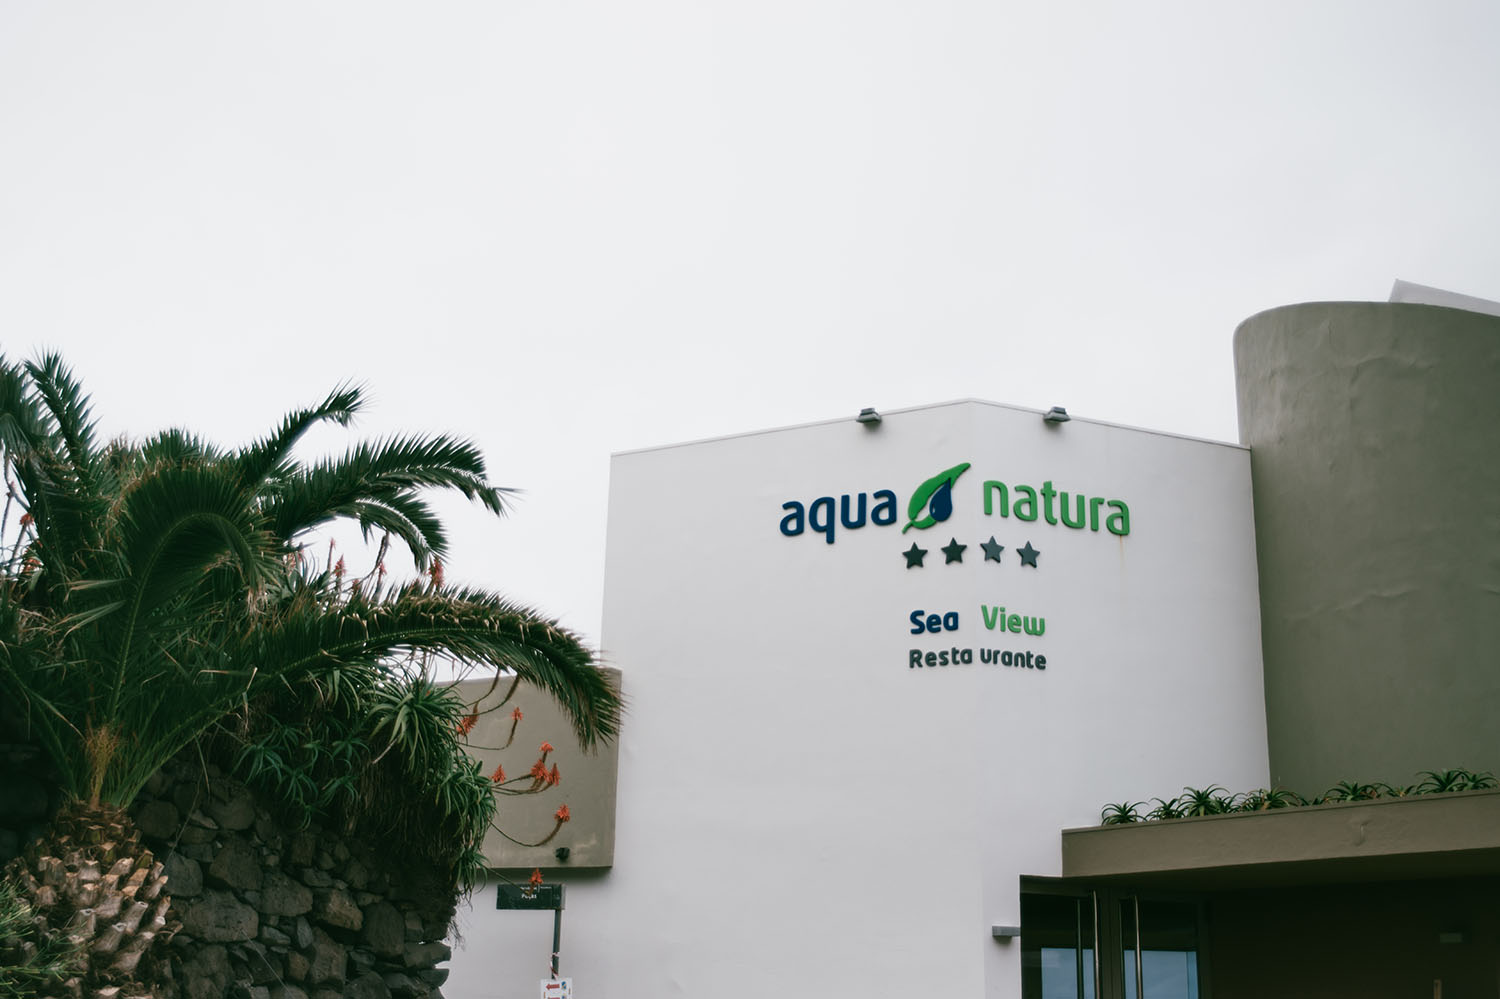 Seaview Restaurant at the Aqua Natura Madeira Hotel